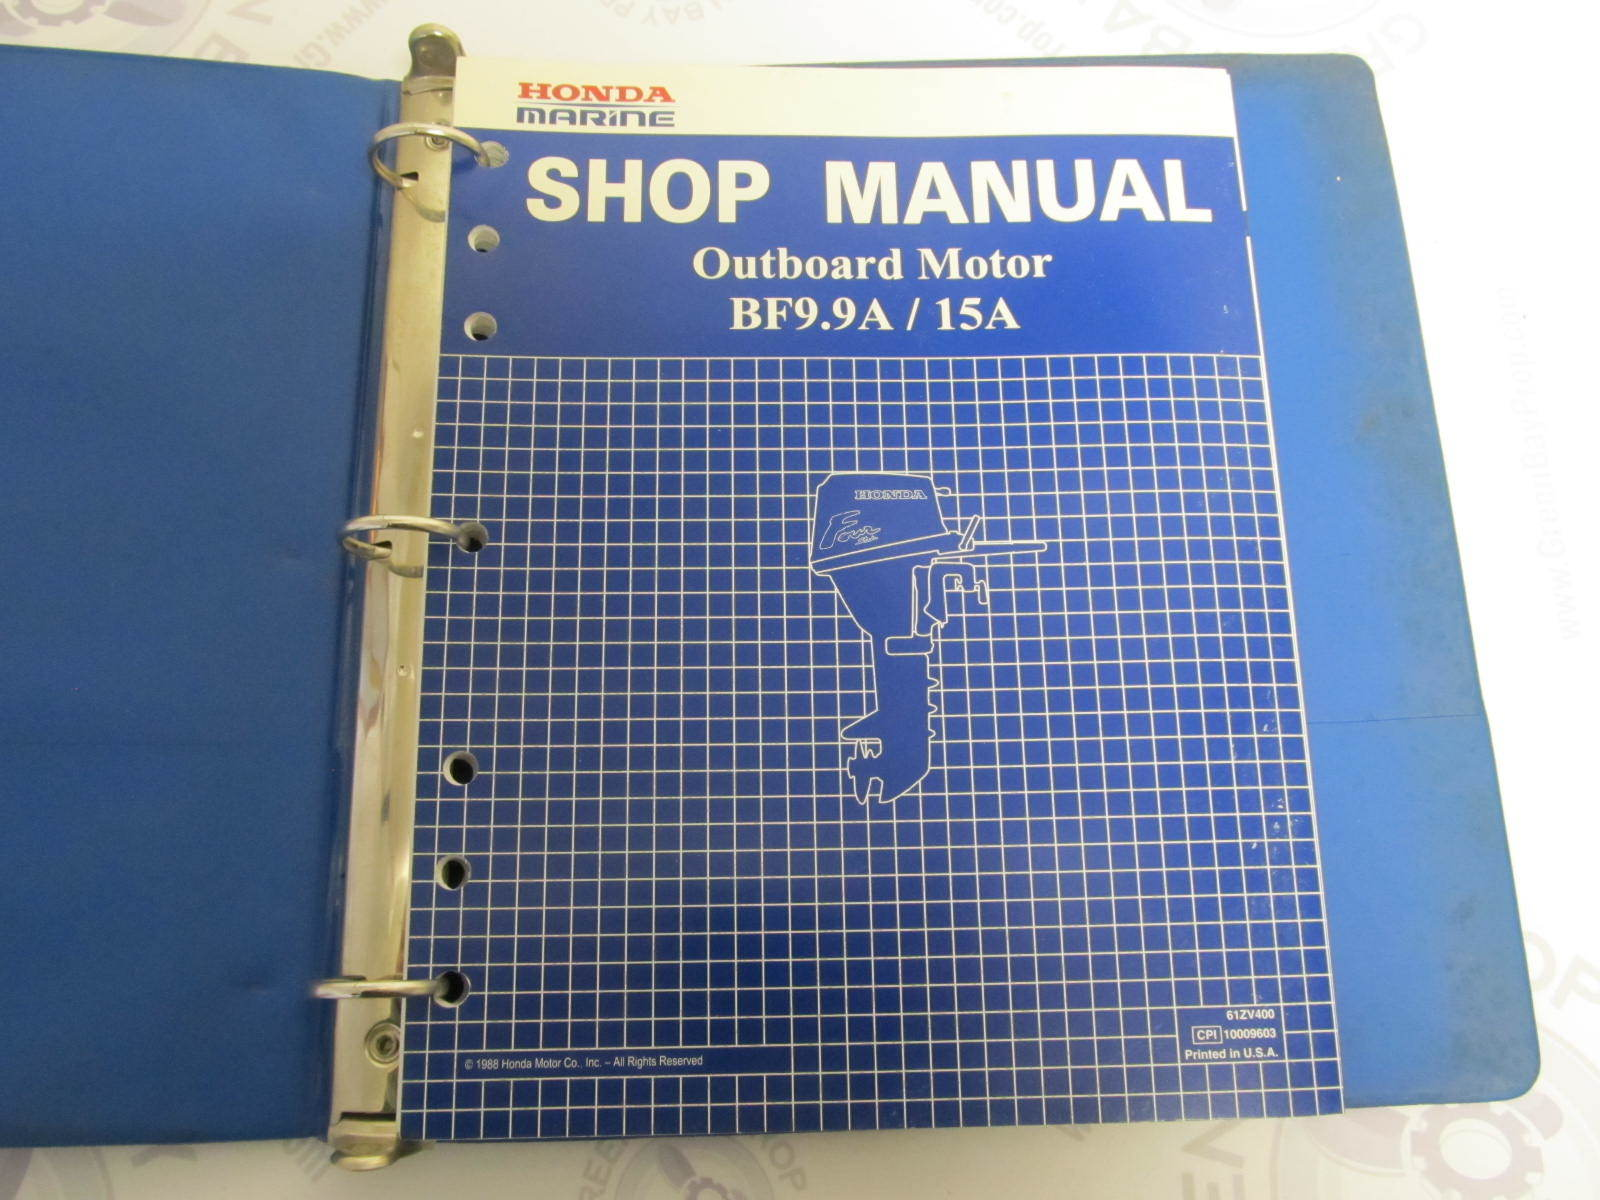 Honda Outboard manual Free on